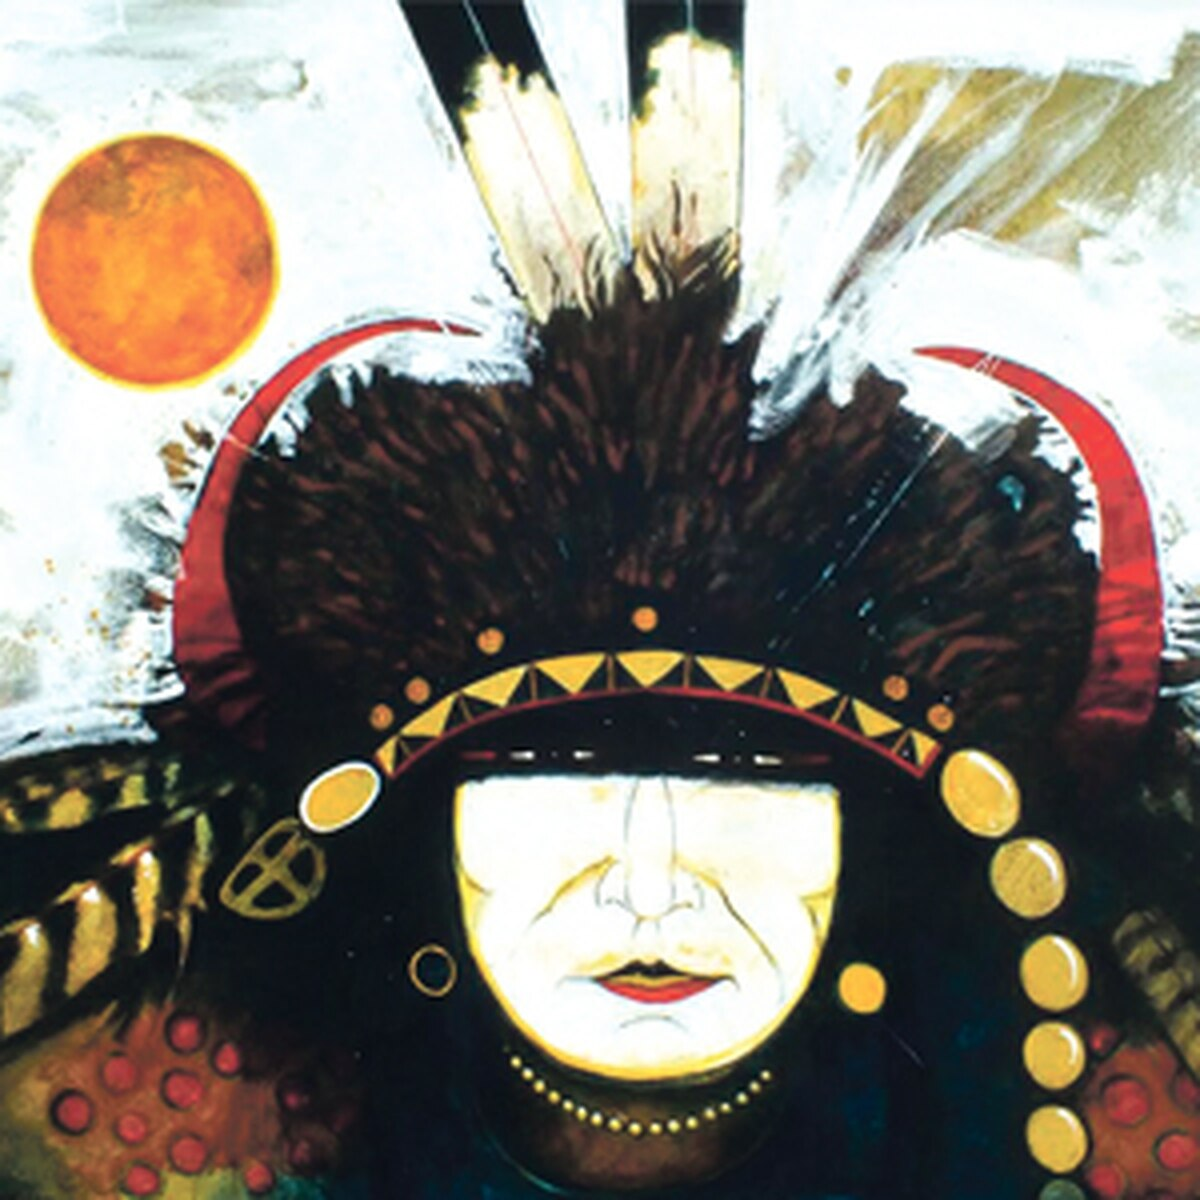 Contemporary Traditionalist, Crow Artist, Kevin Red Star Nationally and Internationally acclaimed, Kevin Red Star's paintings celebrate his culture's history in a contemporary yet traditional style. One of Sorrel Sky Gallery's featured artists during Santa Fe Indian Market 2016, Red Star's style incorporates realism with semi-abstract imagery that includes bold gestures and vivid colors. This show will feature new works from Red Star and will continue through August. More Info>>